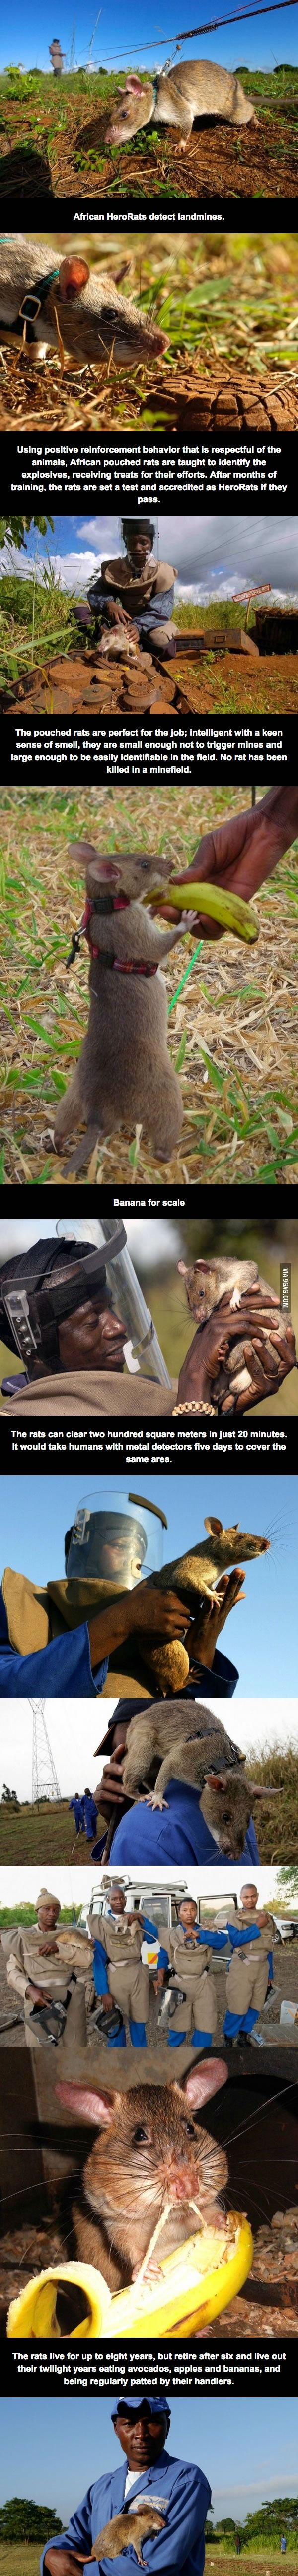 Landmine detectors. The real heroes you don't hear about. - 9GAG